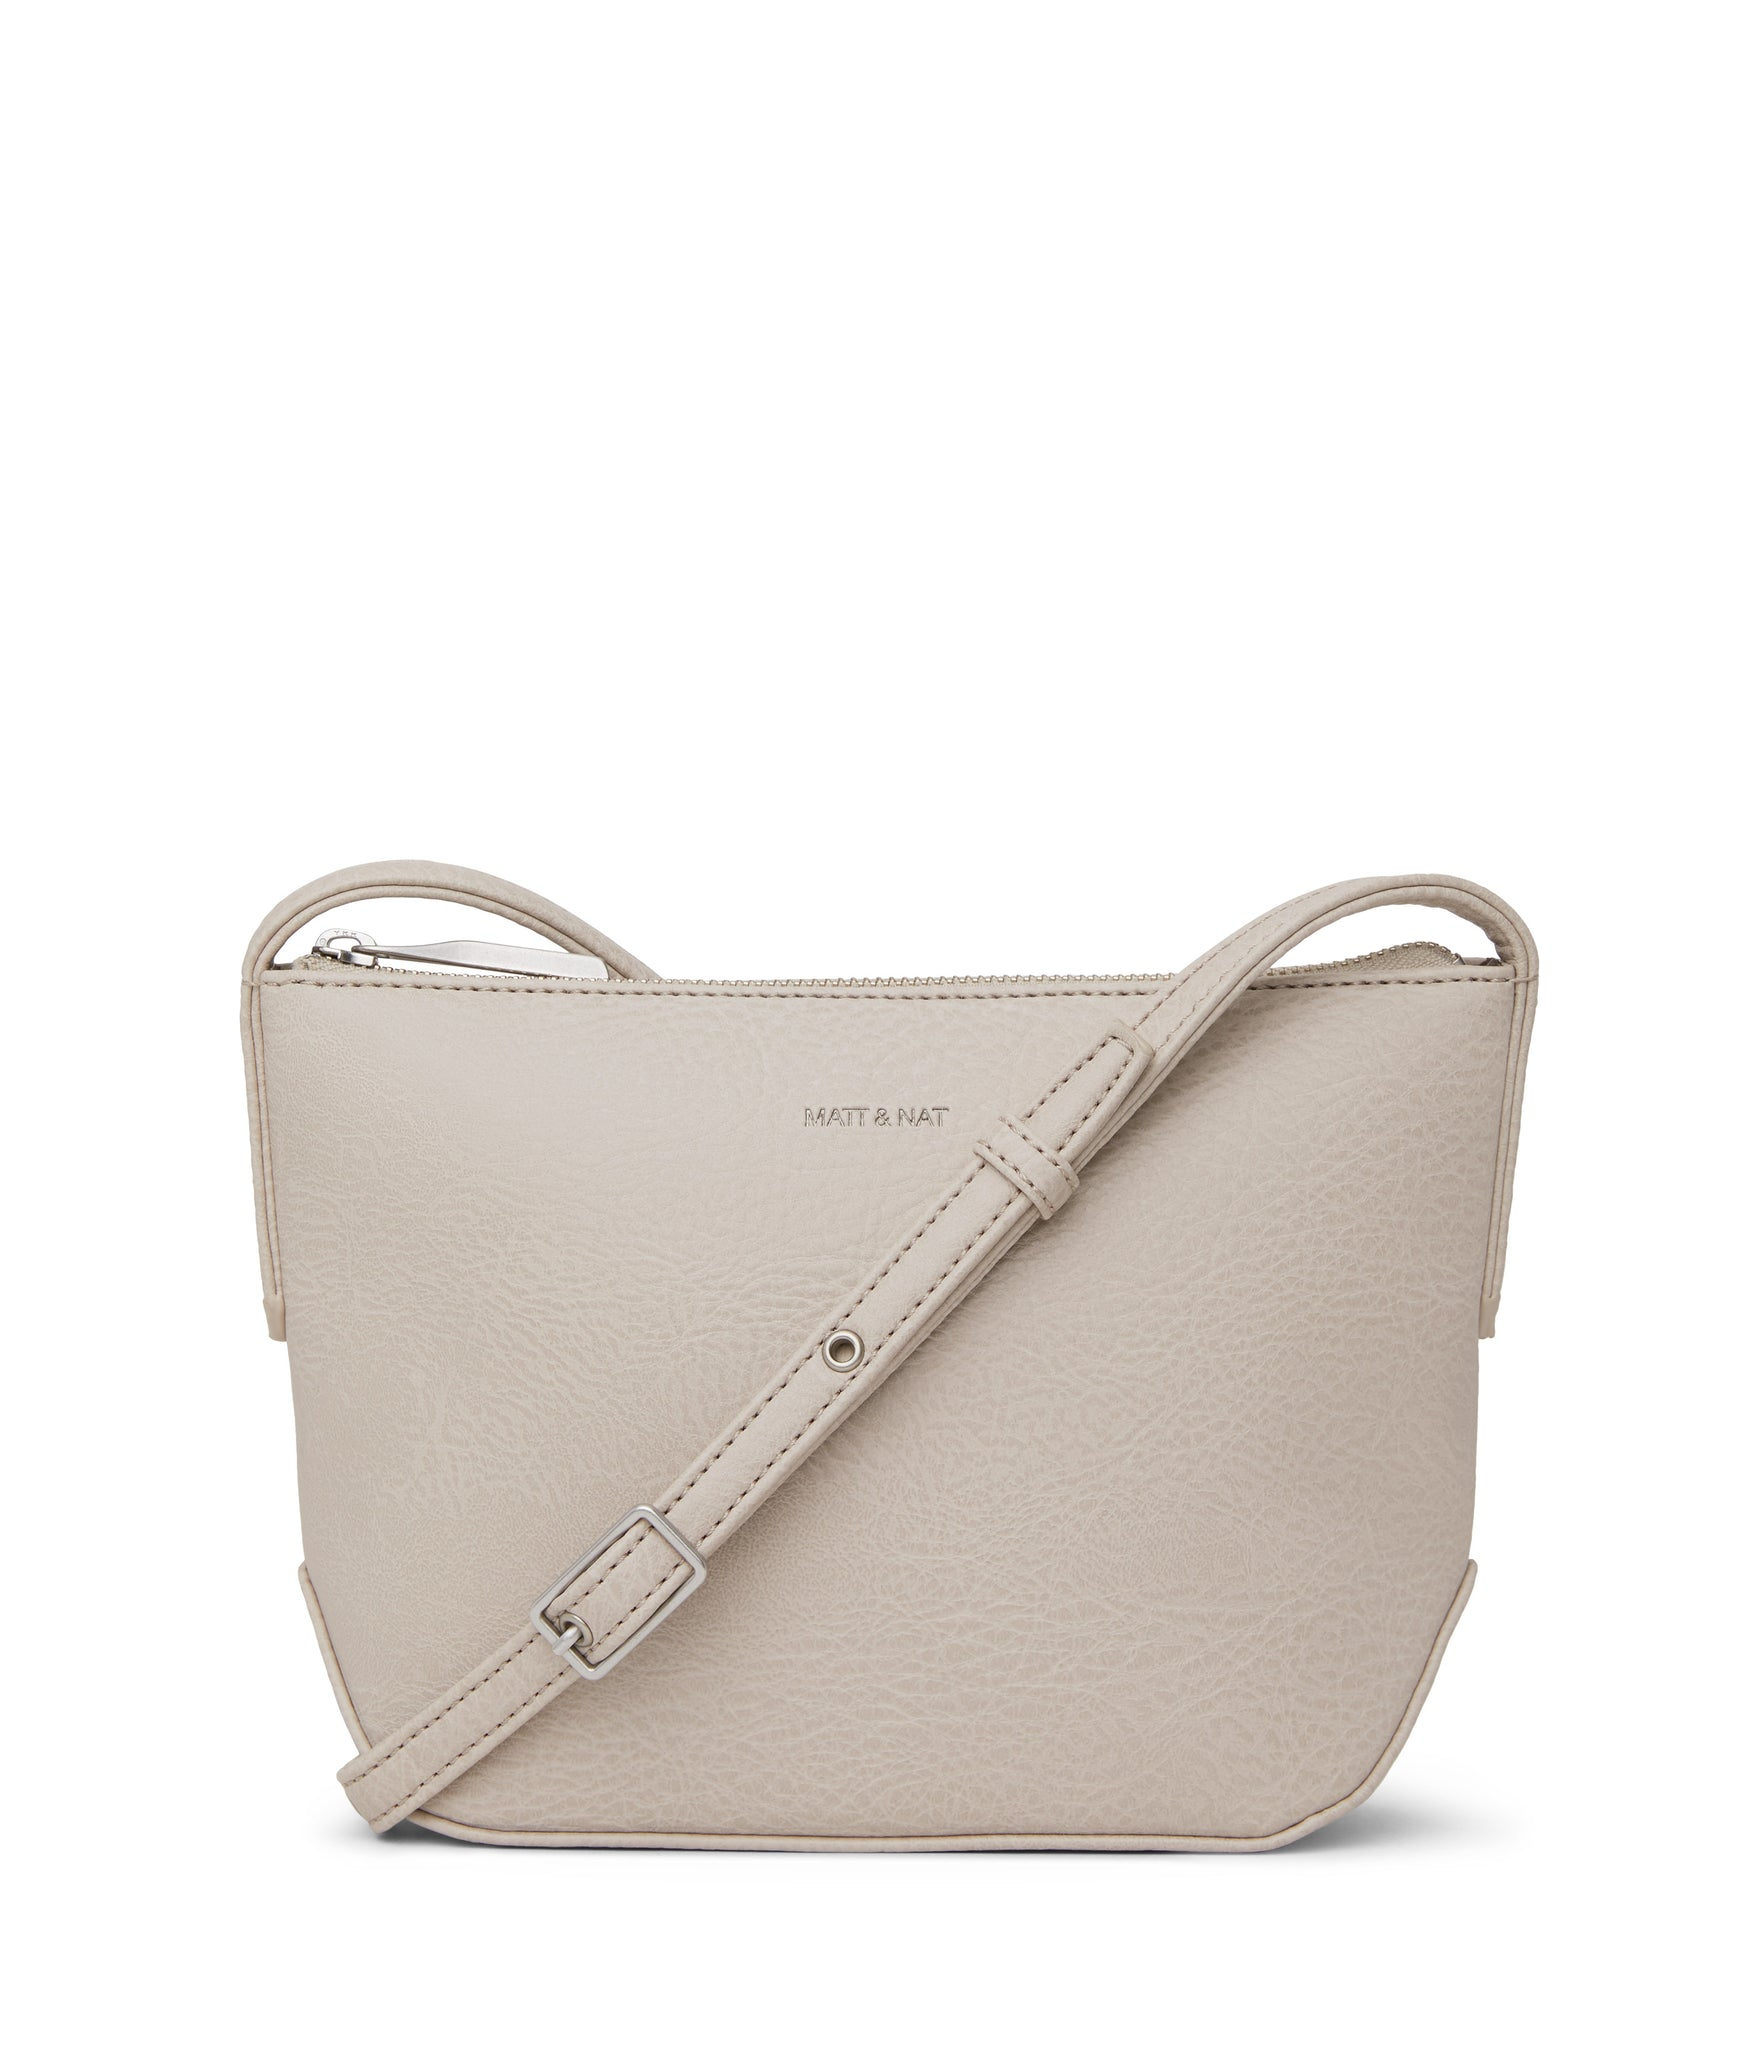 Matt & Nat- SAM SMALL Koala Crossbody Bag